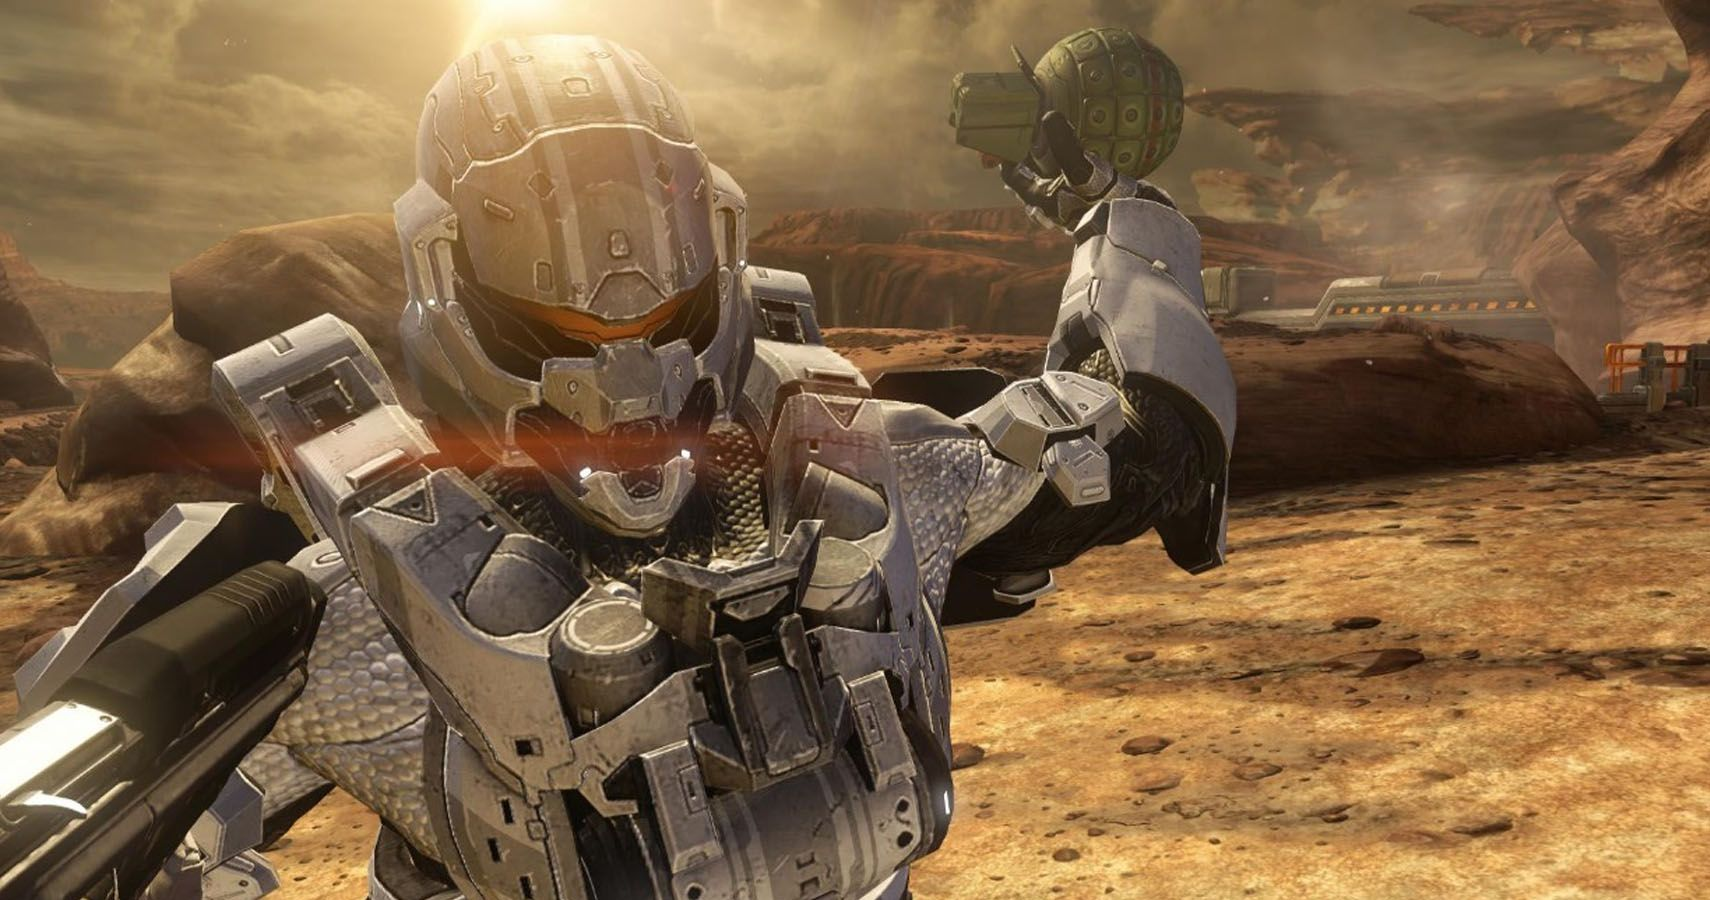 25 Hidden Things In The Halo Series Most Fans Still Haven't